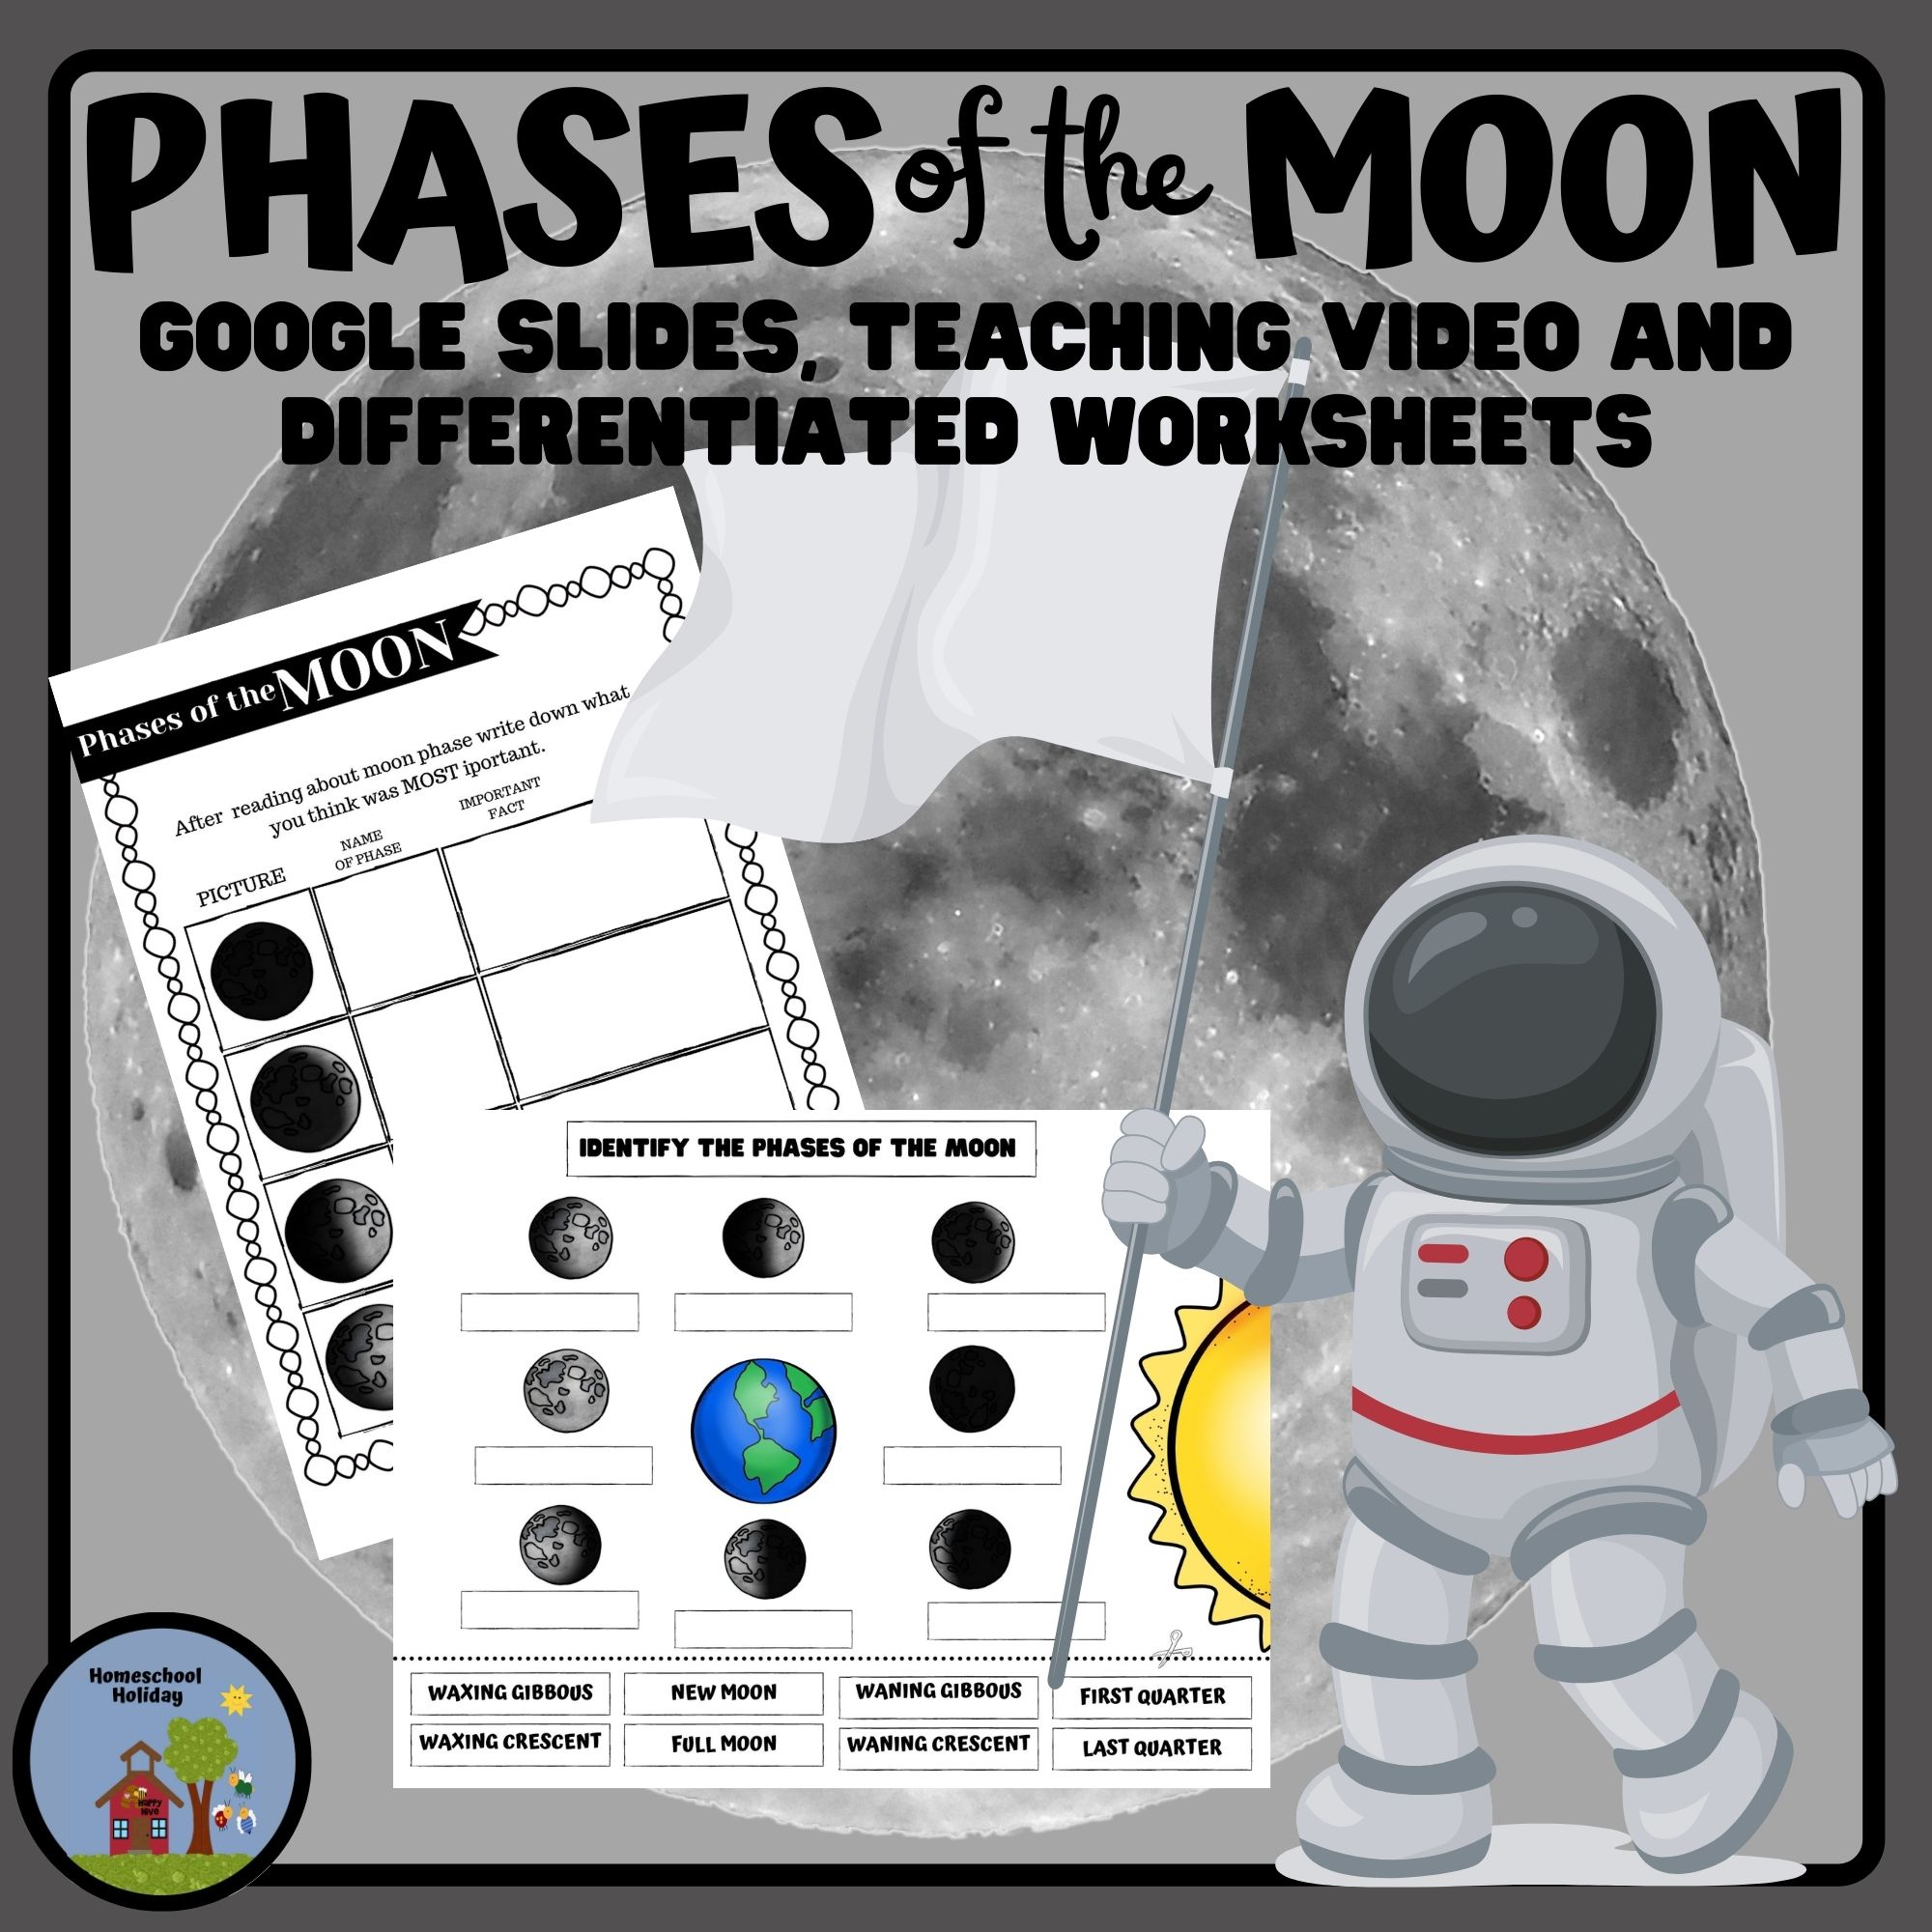 phases-of-the-moon-cover-.jpg